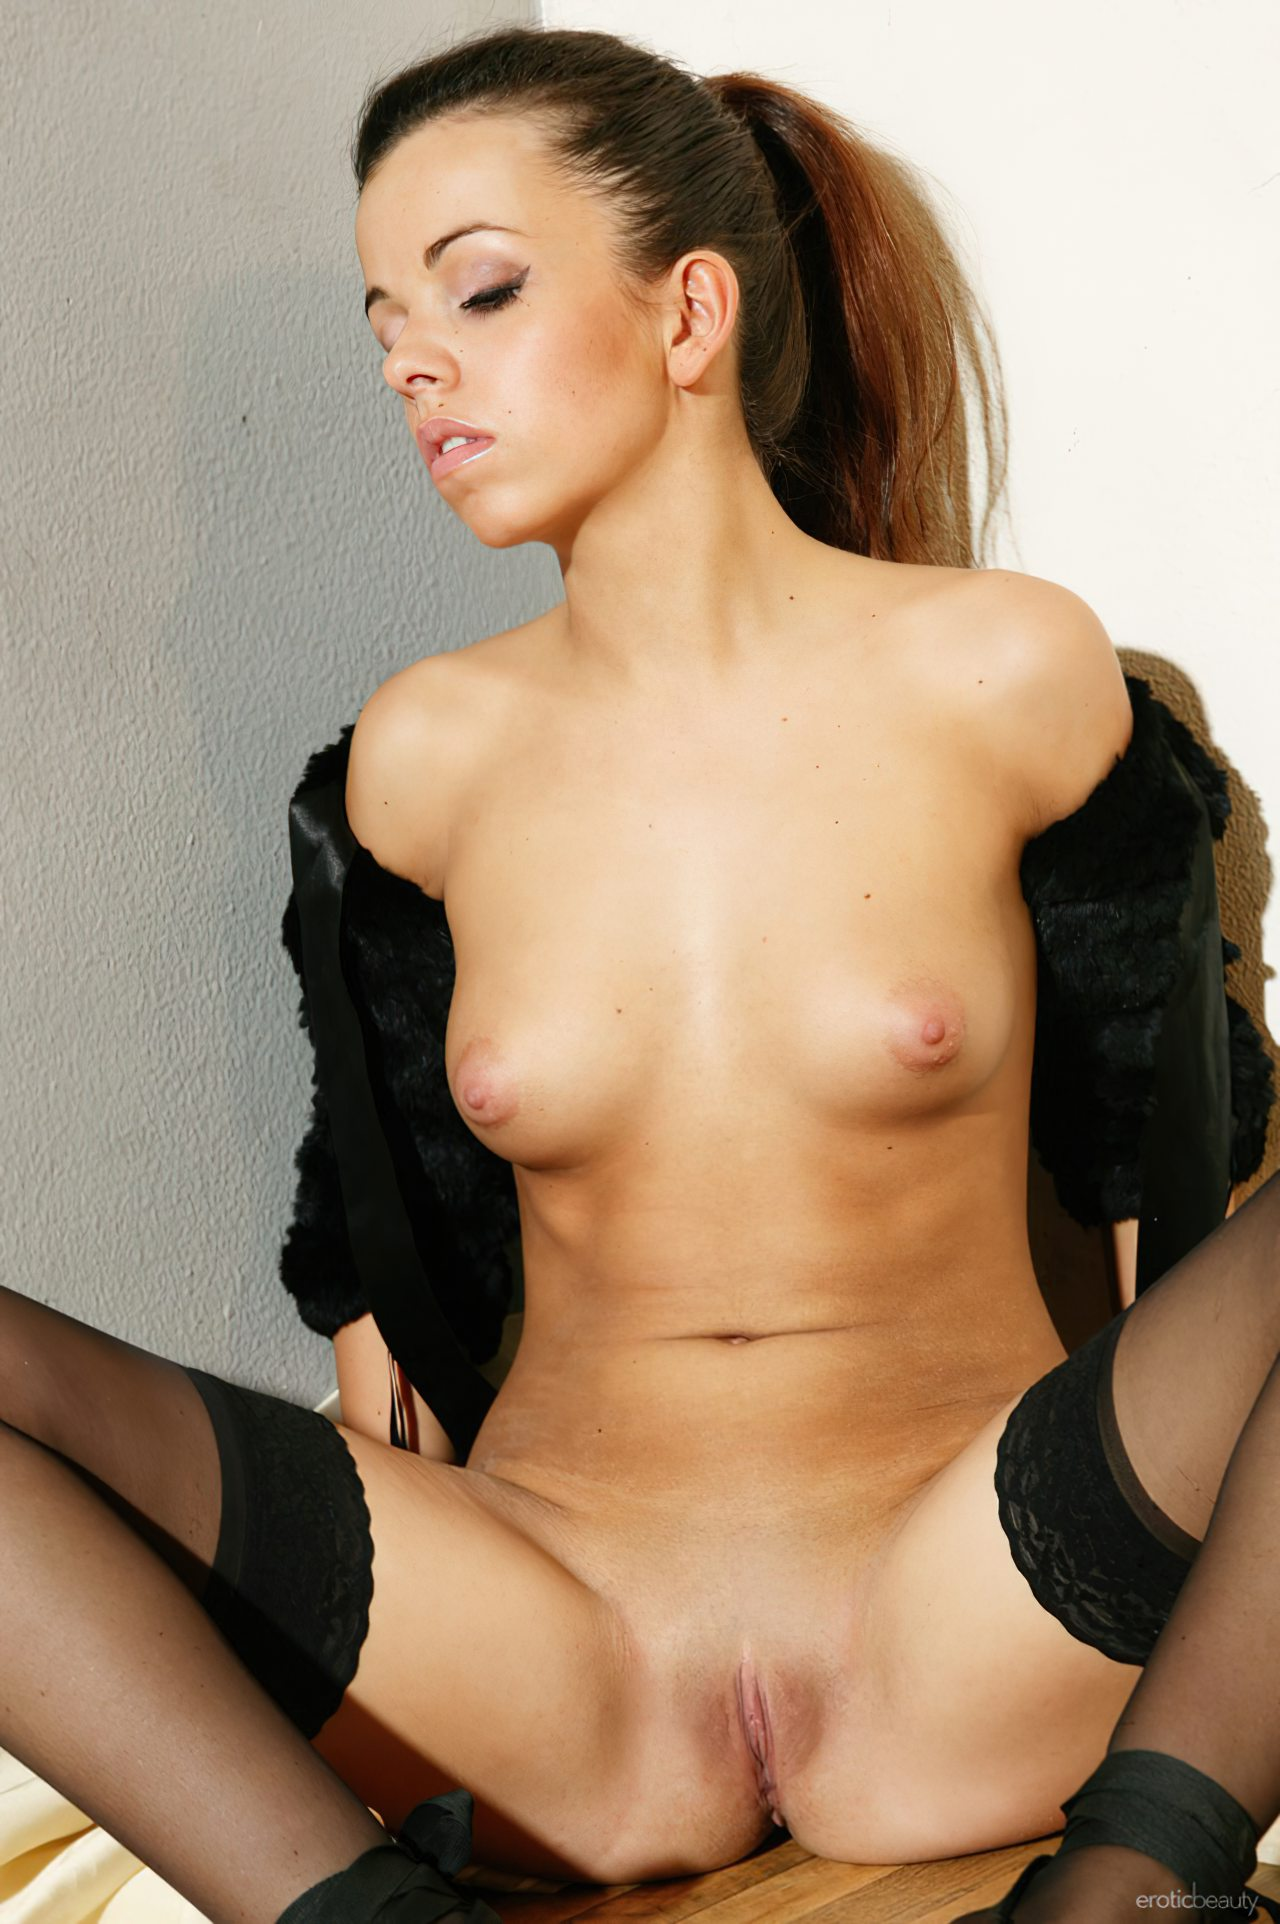 Imgs Sexys (15)